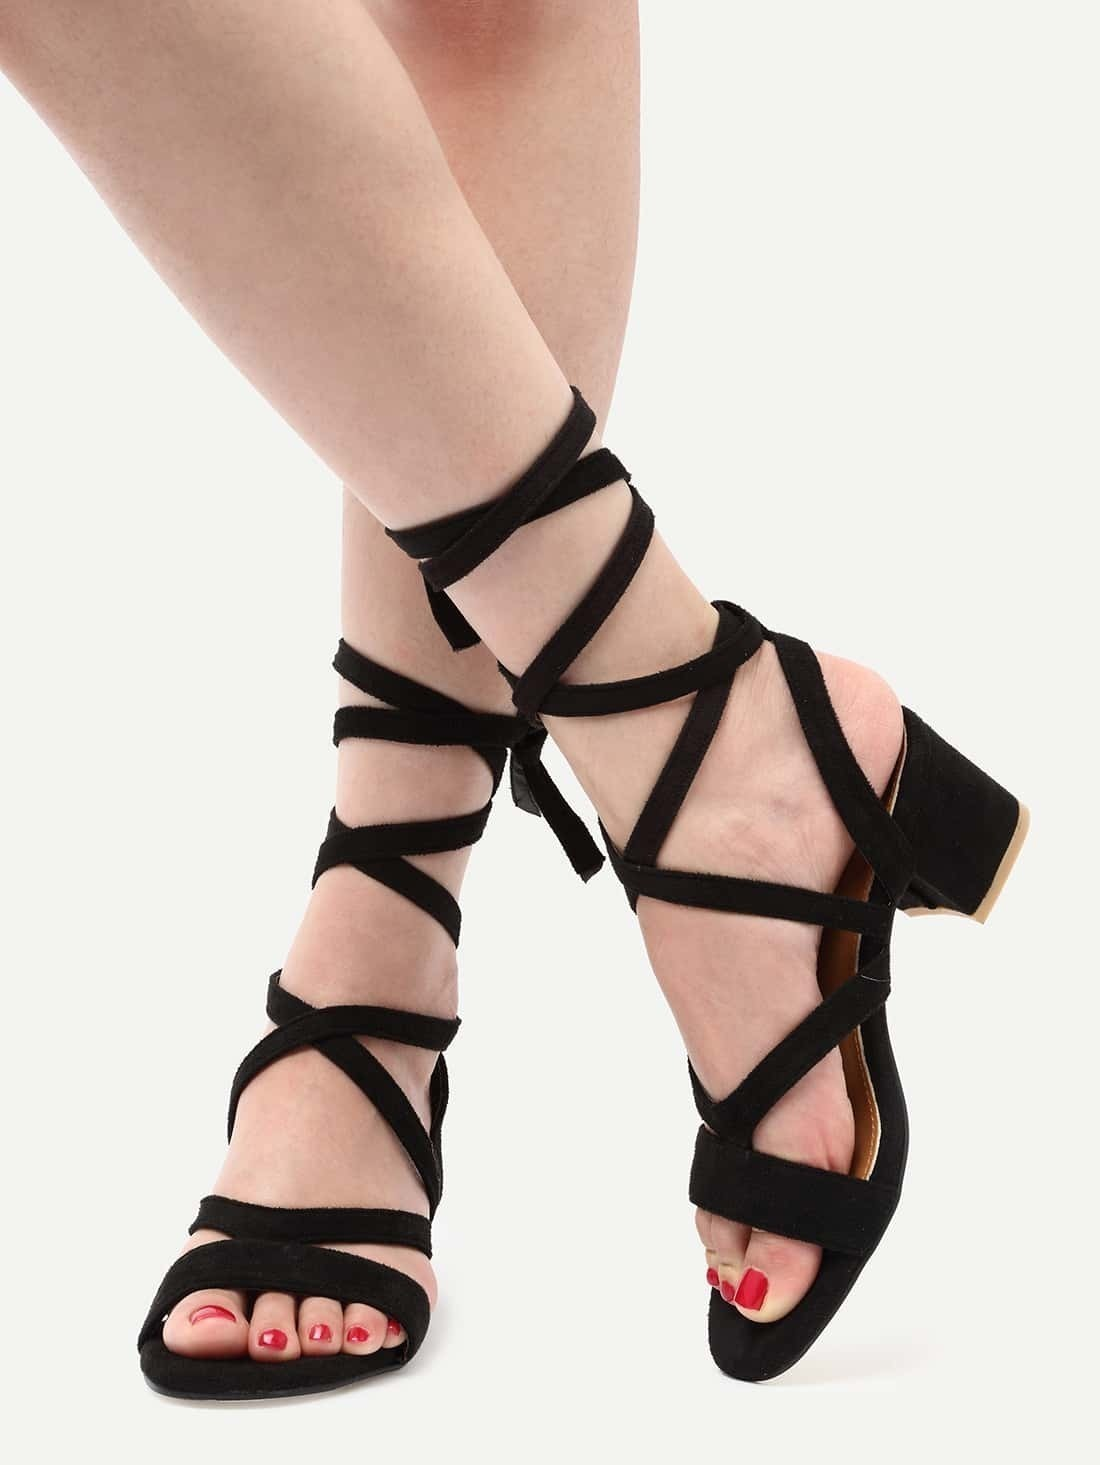 76c0d1042ac8 Black Faux Suede Lace Up Sandals EmmaCloth-Women Fast Fashion Online